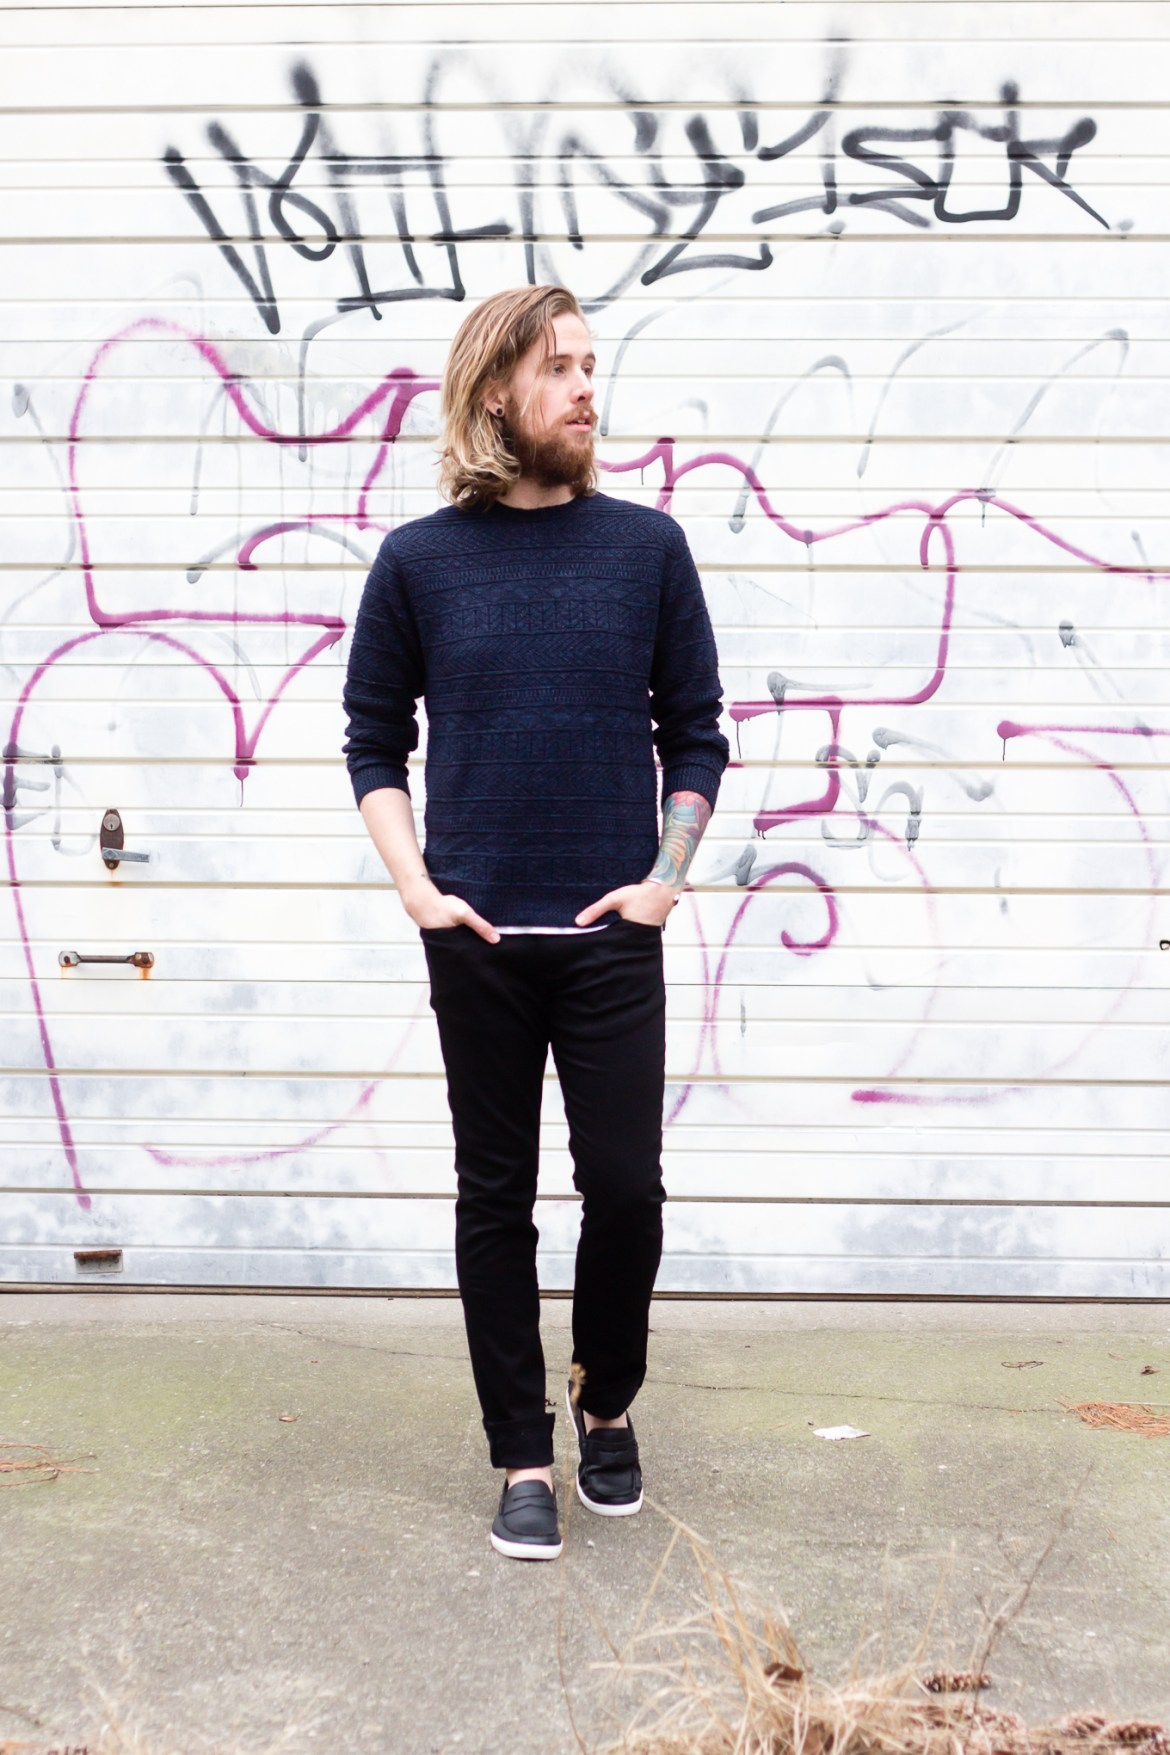 The Kentucky Gent, a Louisville, Kentucky based men's fashion and lifestyle blogger, shows his twenty fifth birthday style in Polo Ralph Lauren, Mott & Bow, and Cole Haan.